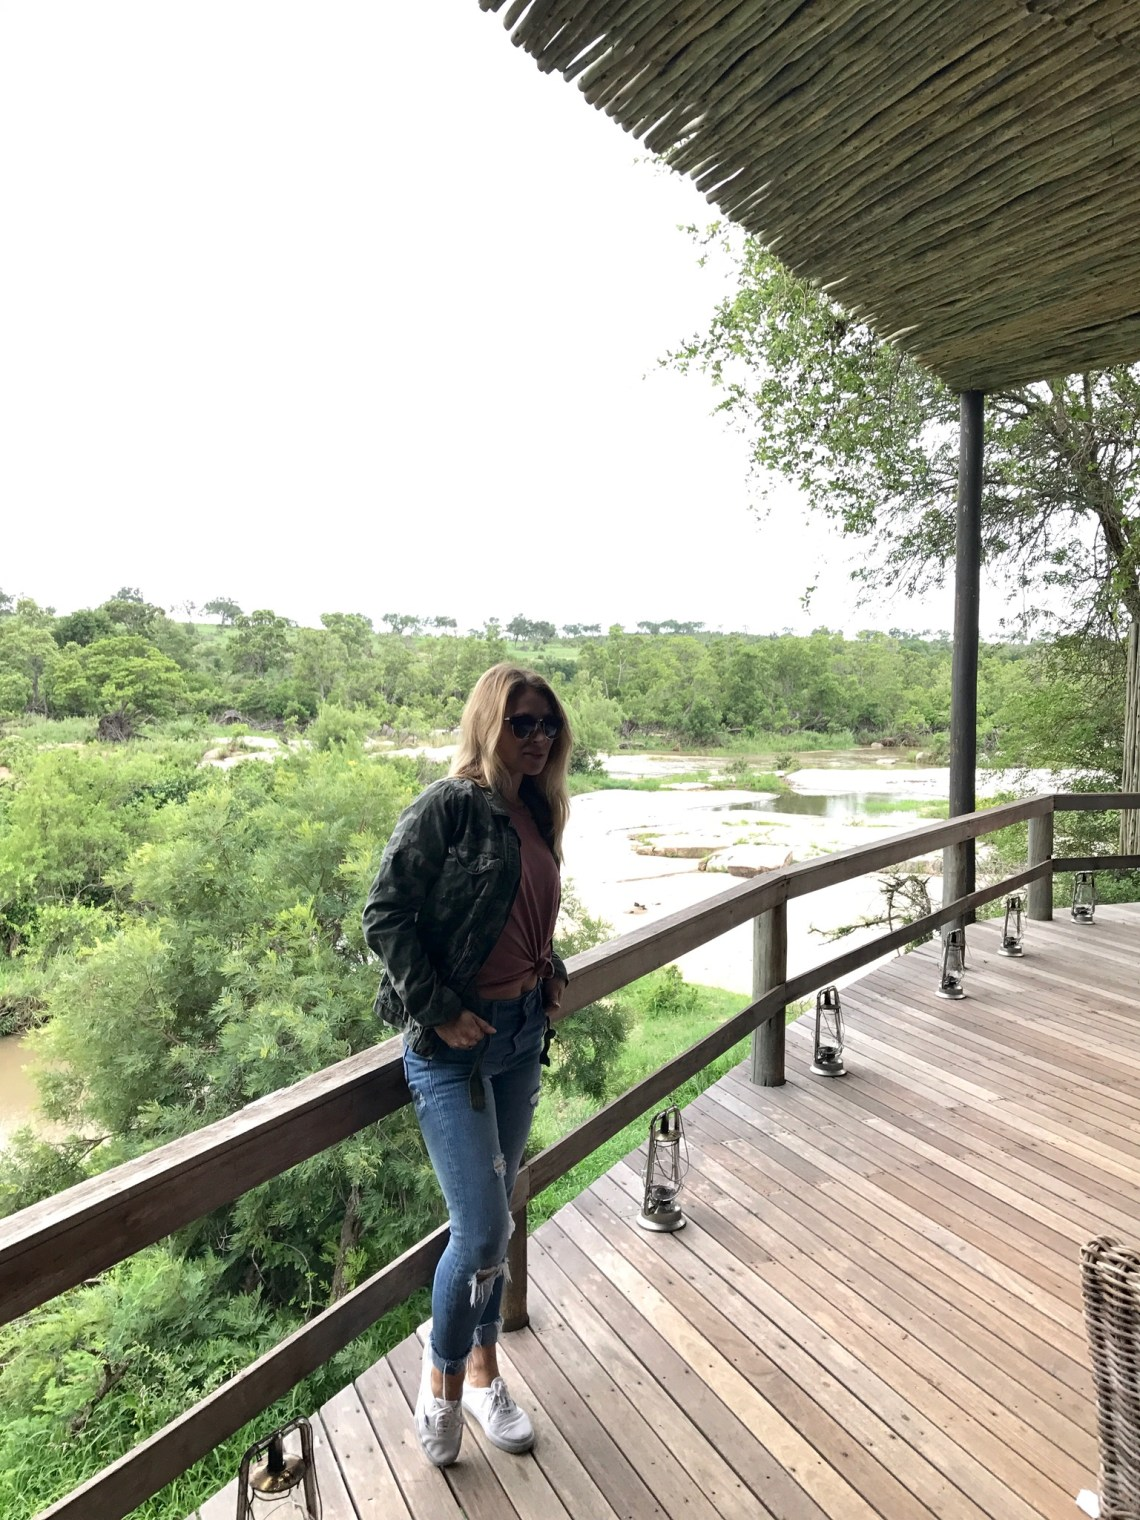 Londolozi Safari | Relais Chateaux Safari | Travel Blogger Nikole Powers